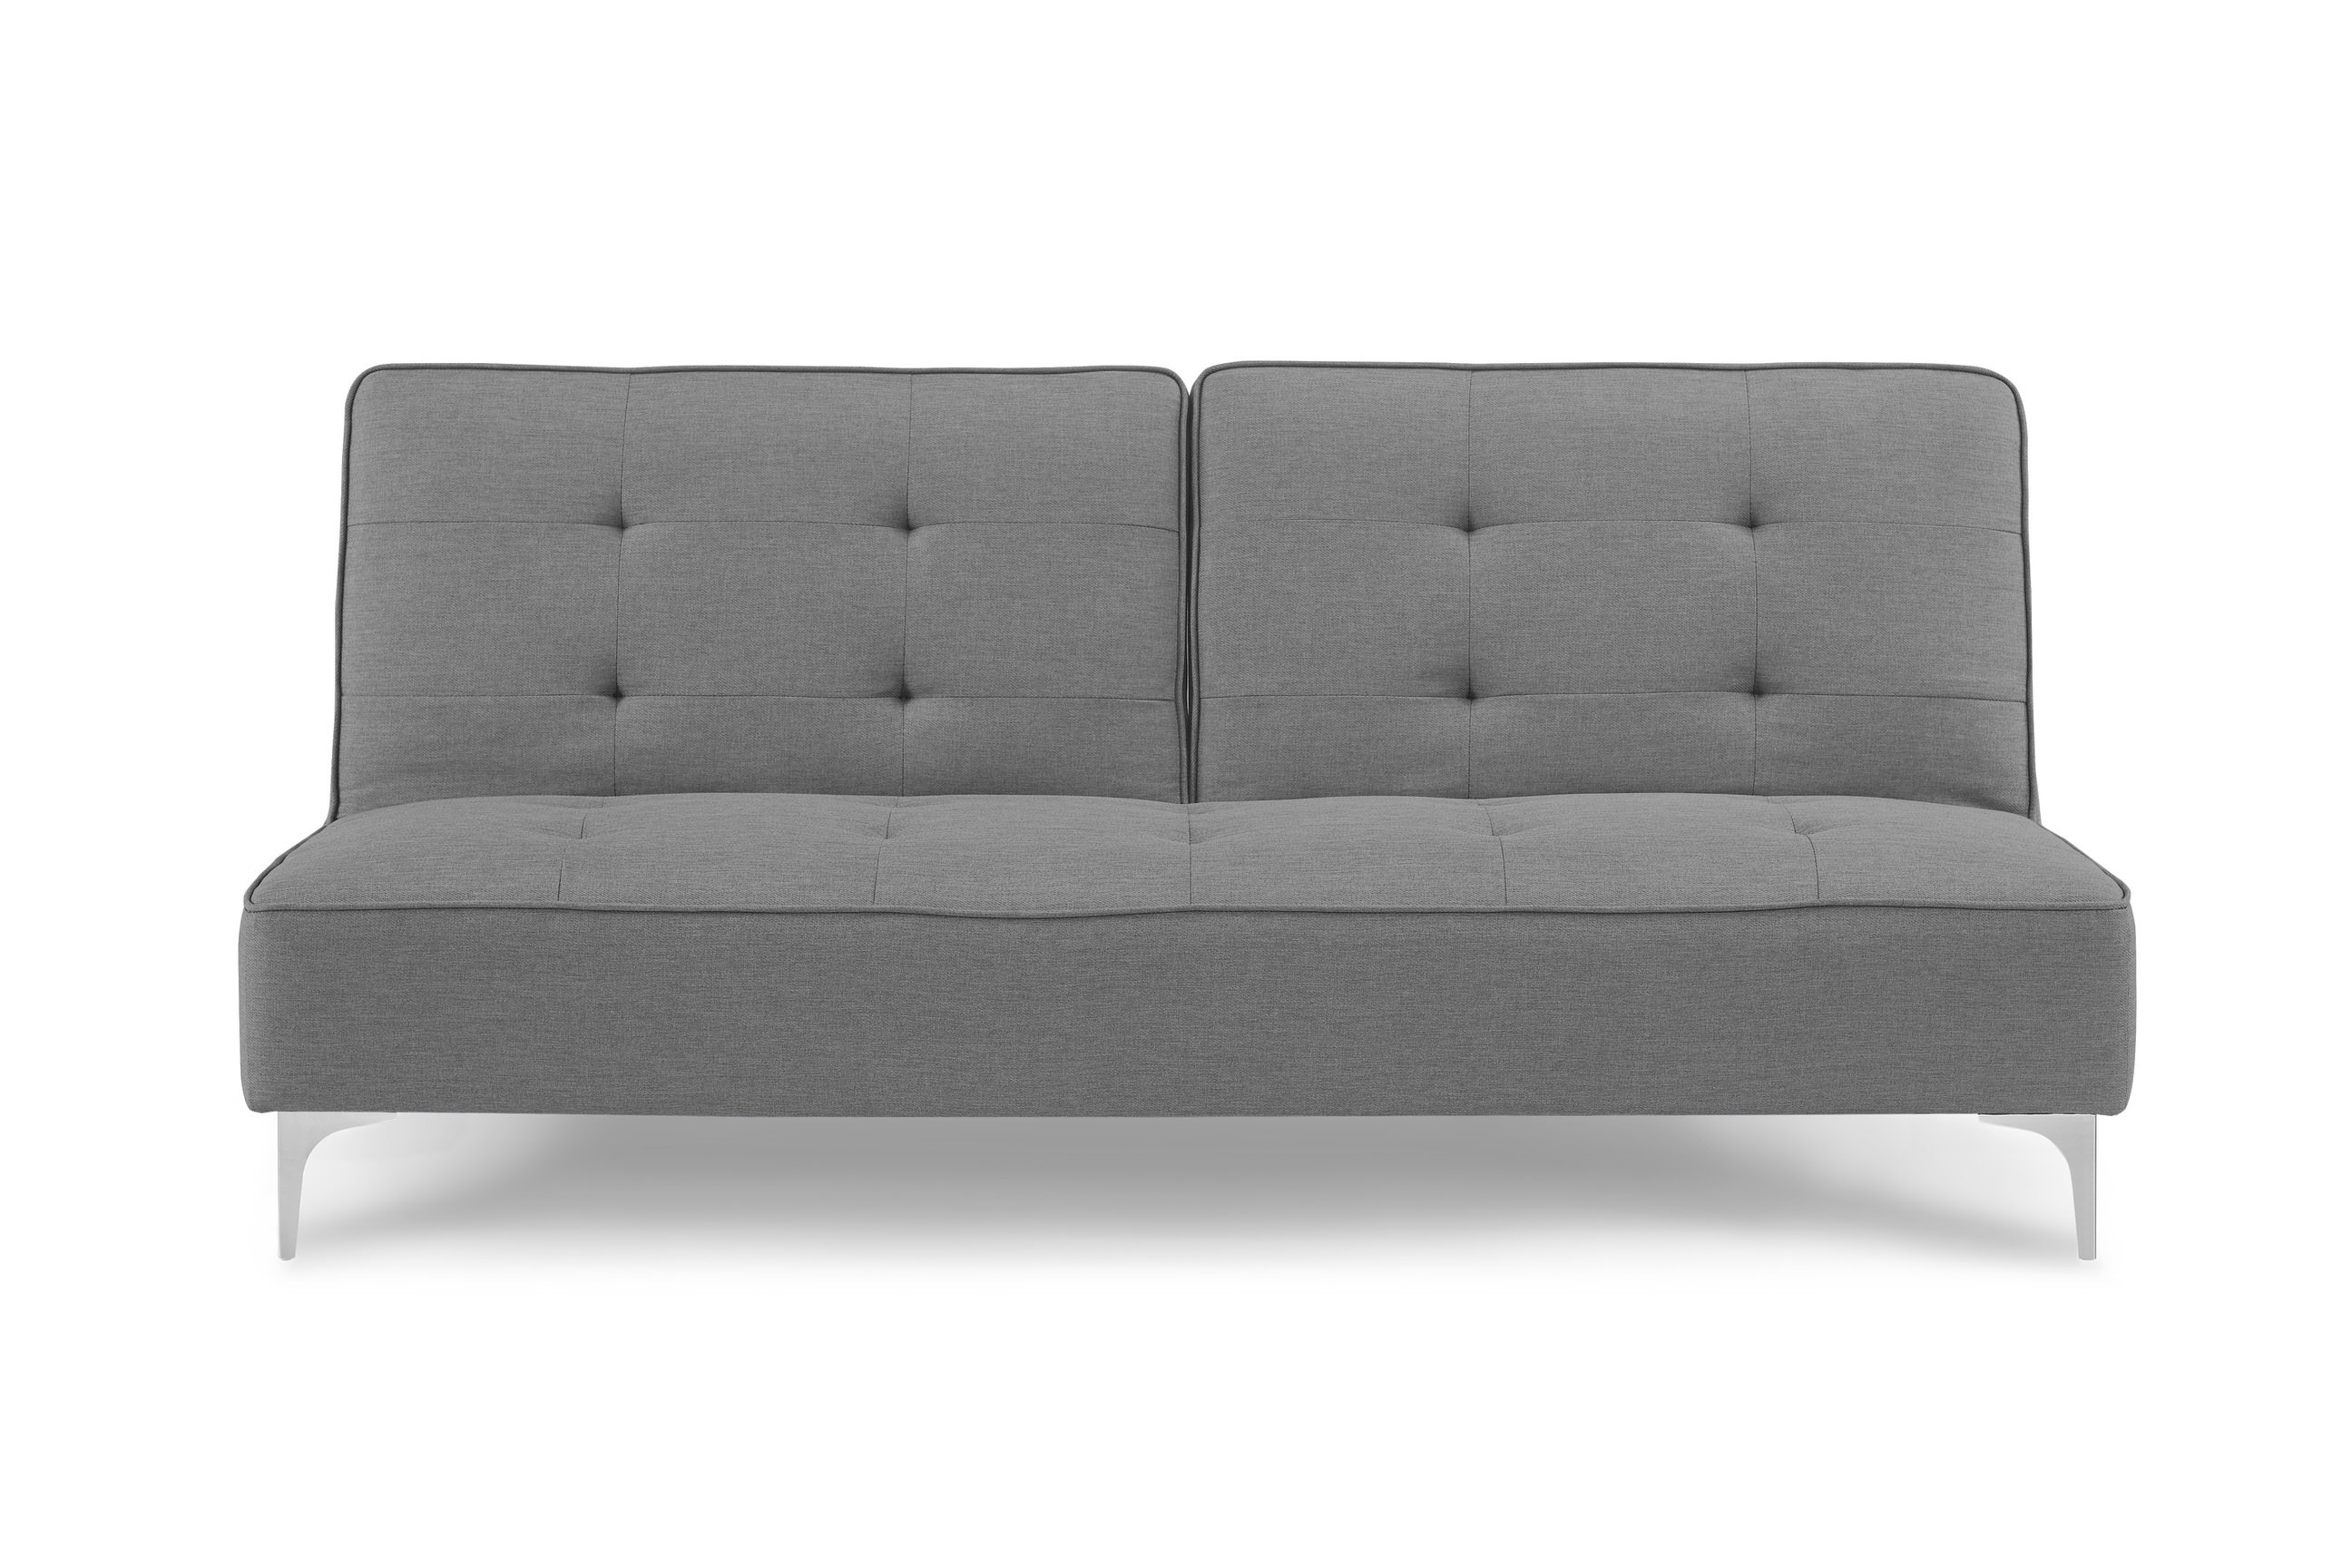 Groovy Jordan Cozy Slate Splitback Sofa Convertible By Sealy Gmtry Best Dining Table And Chair Ideas Images Gmtryco